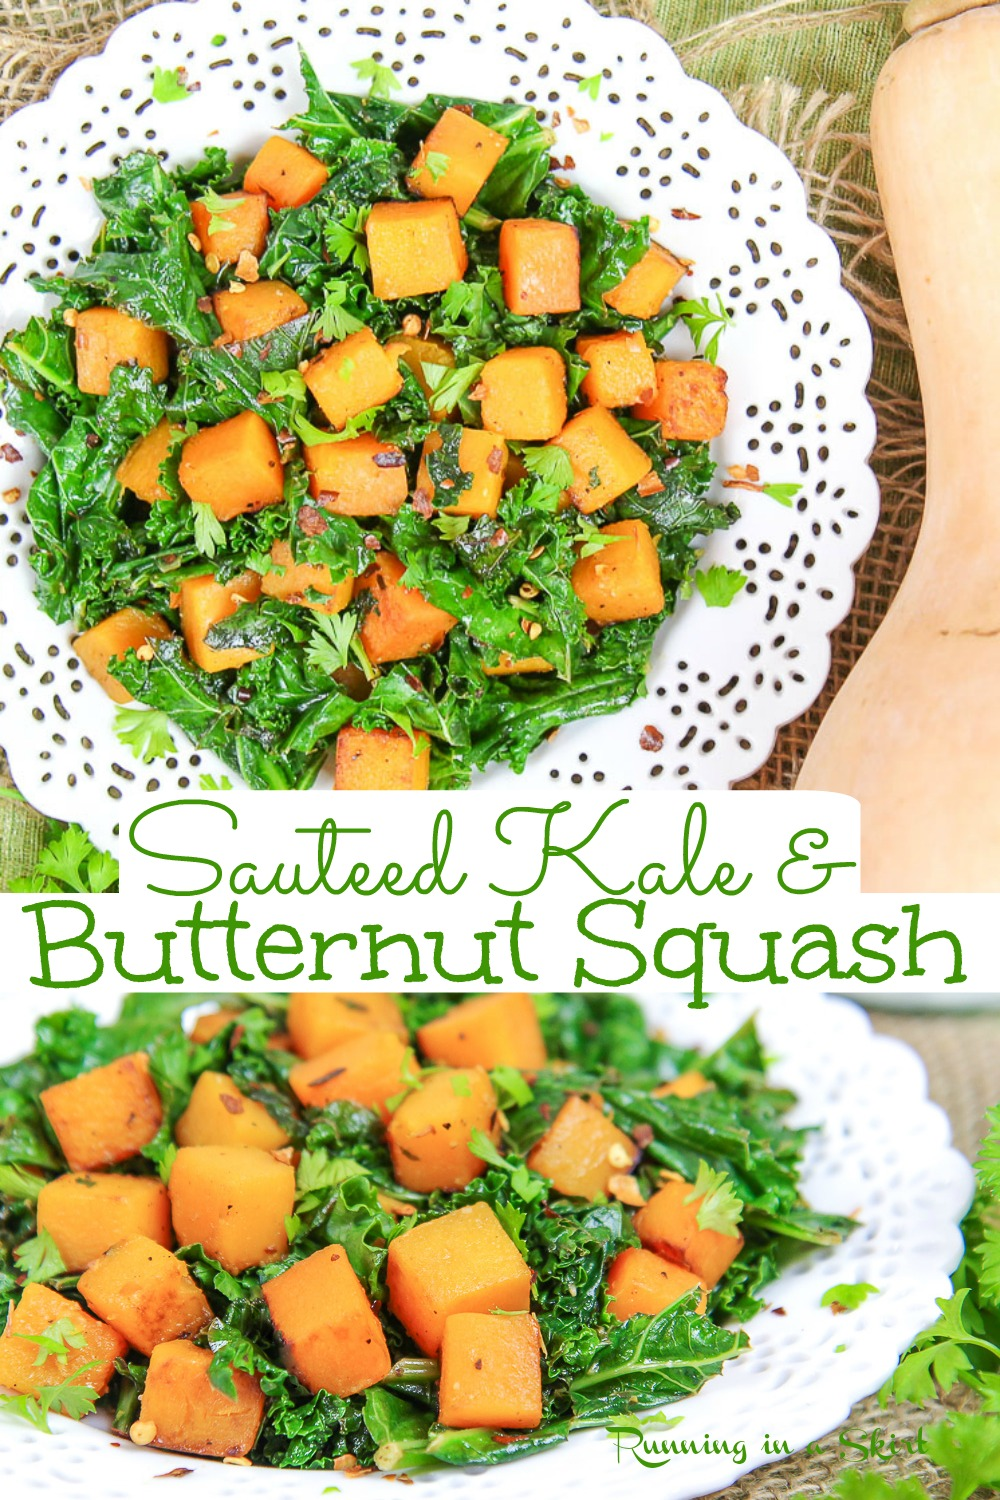 Sauteed Kale & Butternut Squash recipe - Vegetarian or Vegan Side Dish for Thanksgiving or Fall. Includes step by step how to cook instructions. Use as a side dish, on top of a grain bowl, or even filling for a wrap or quesadilla. Vegan, Vegetarian, Gluten Free, Keto / Running in a Skirt #thanksgiving #vegetarian #sidedish #kale #healthy #healthyliving via @juliewunder